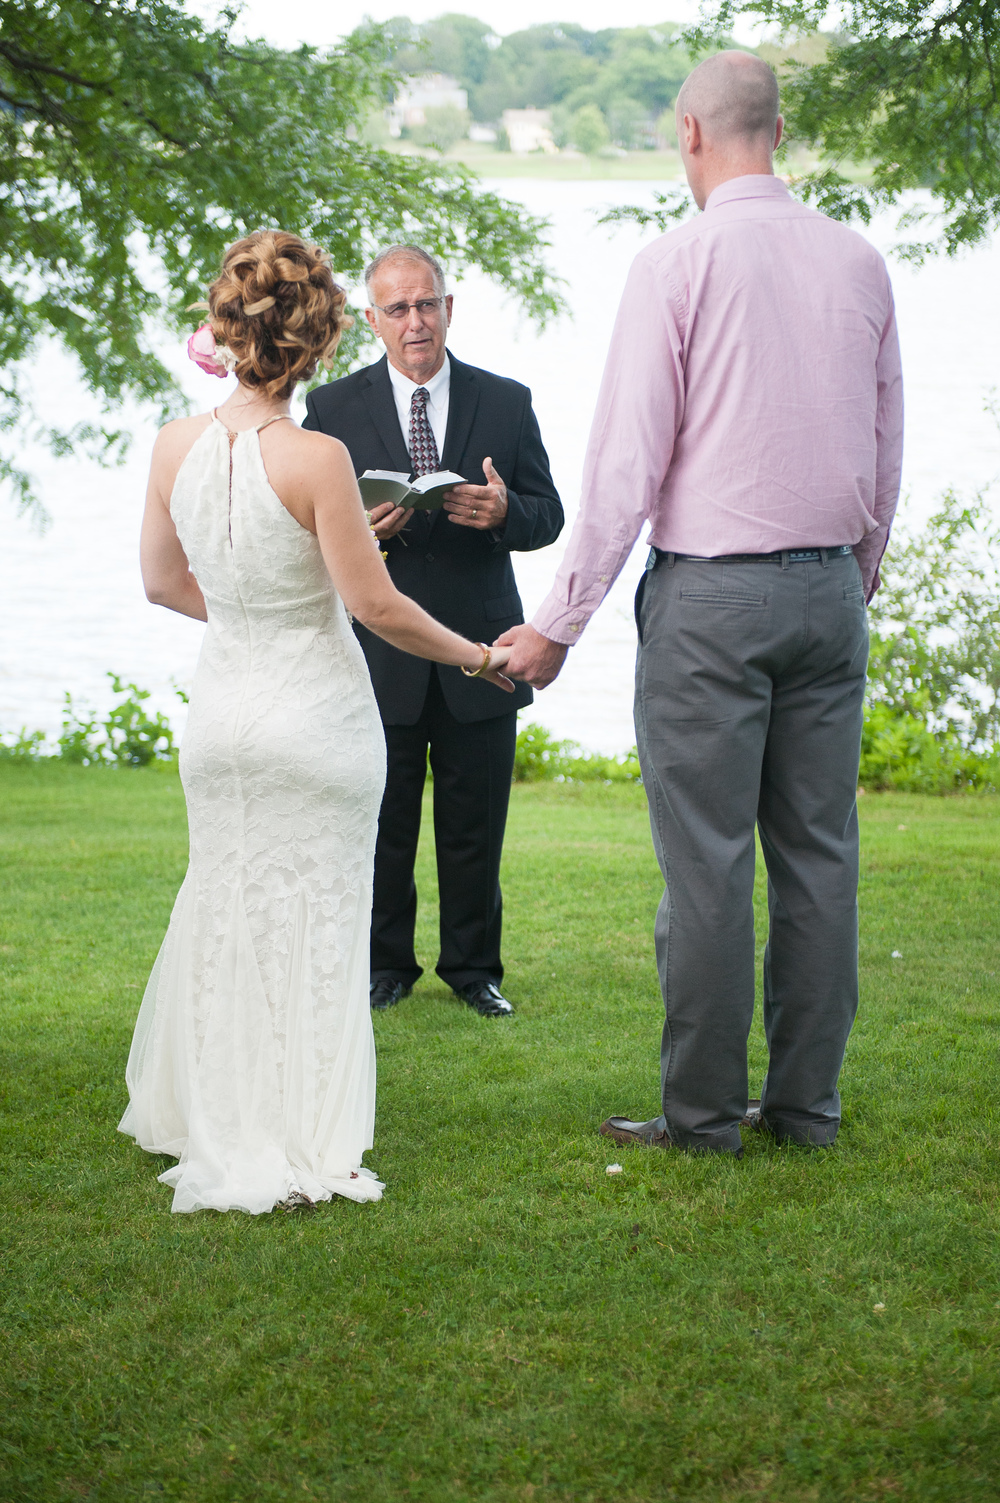 Intimate wedding ceremony Lake Quannapowitt Photographer MA